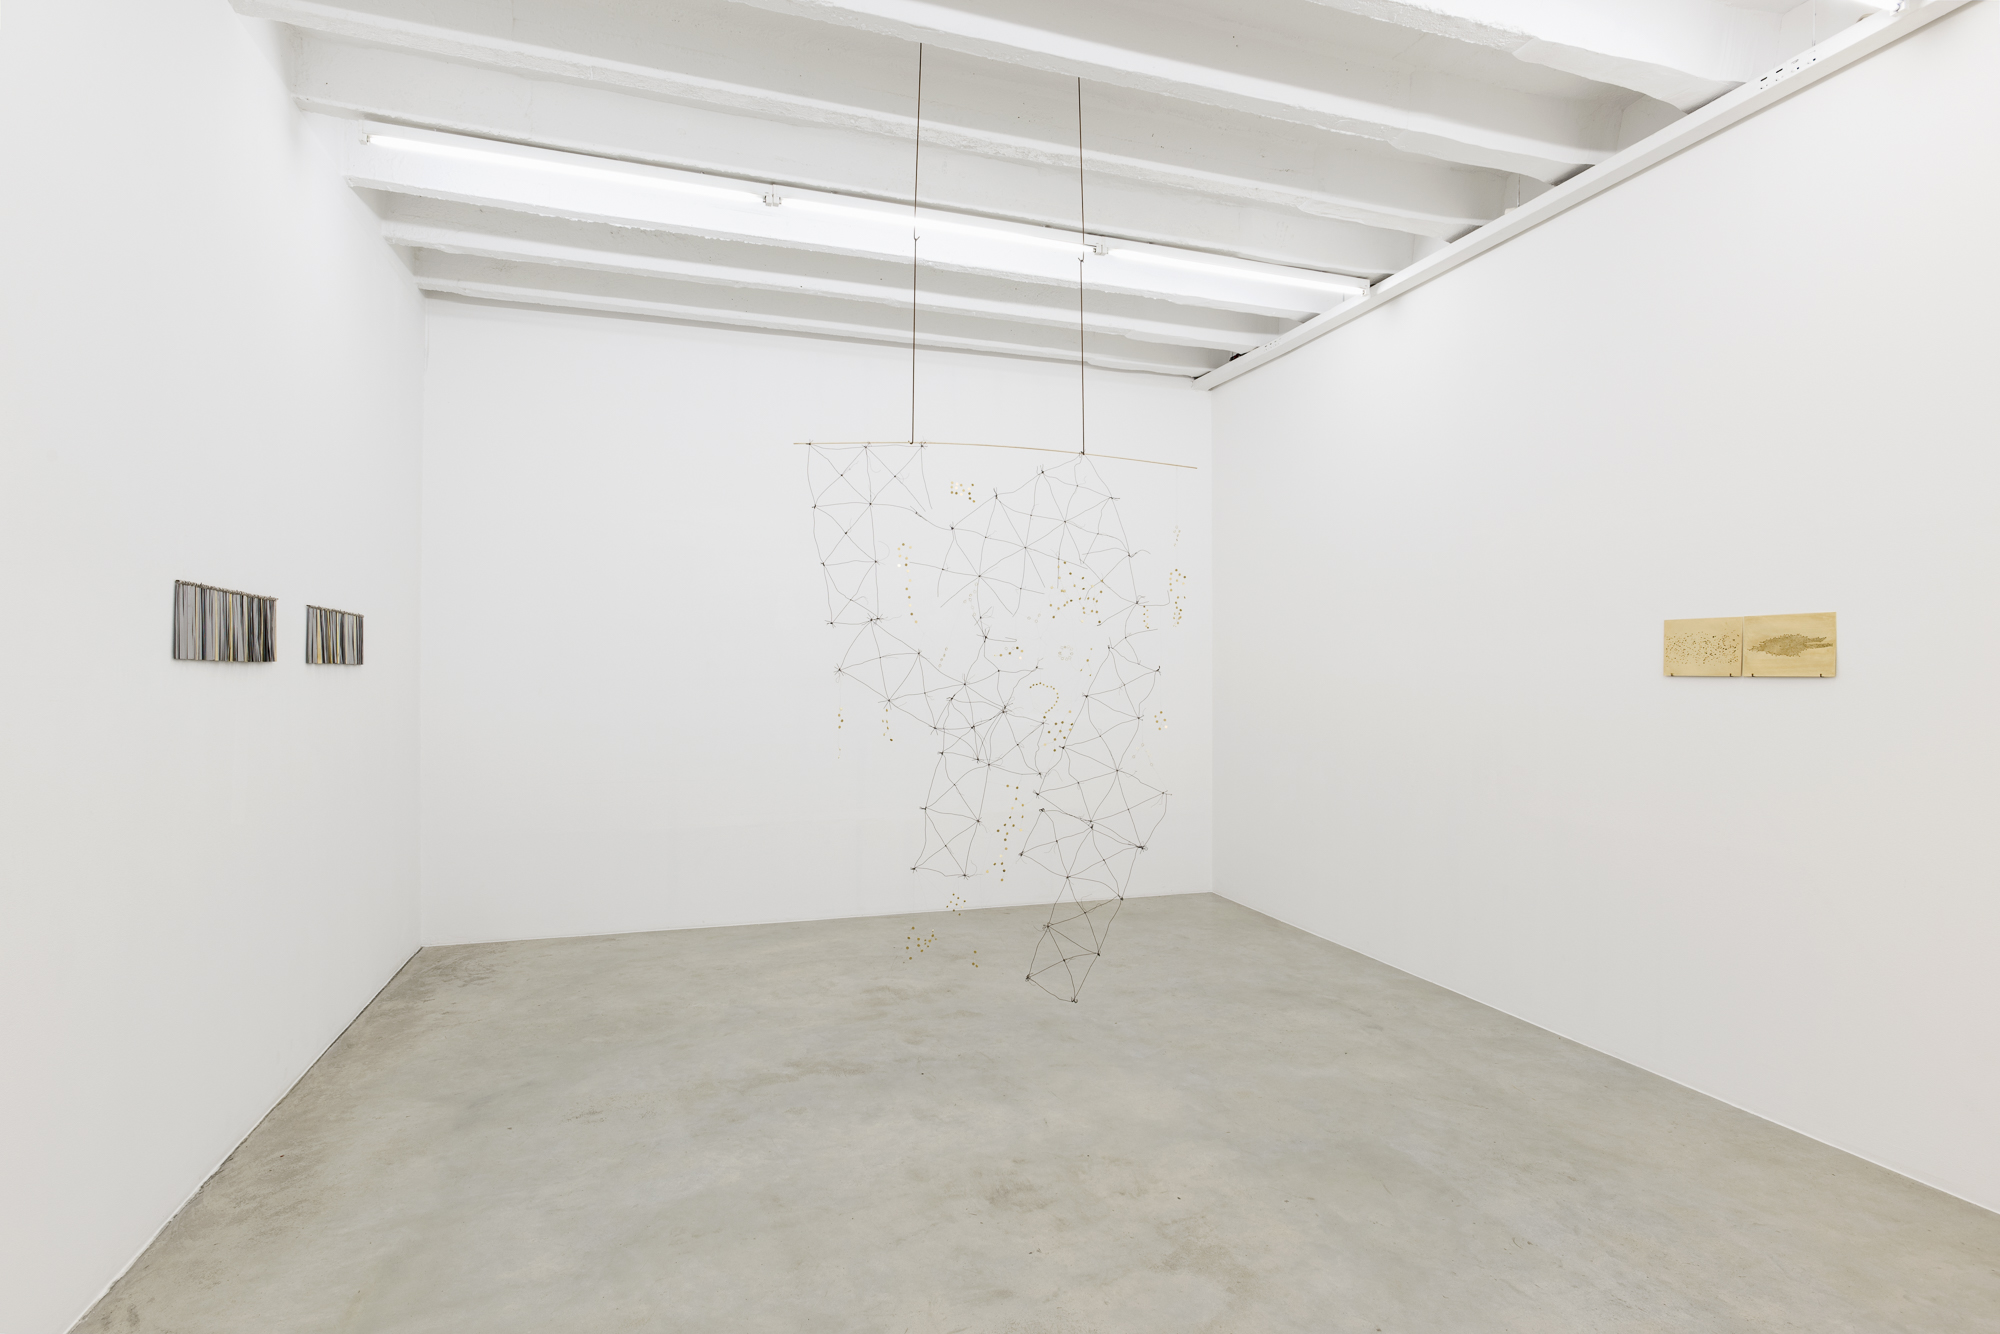 Iza Tarasewicz, Equilibrium in Meteors, exhibition view, Galerija Gregor Podnar, Berlin, 2018. Photo: Marcus Schneider